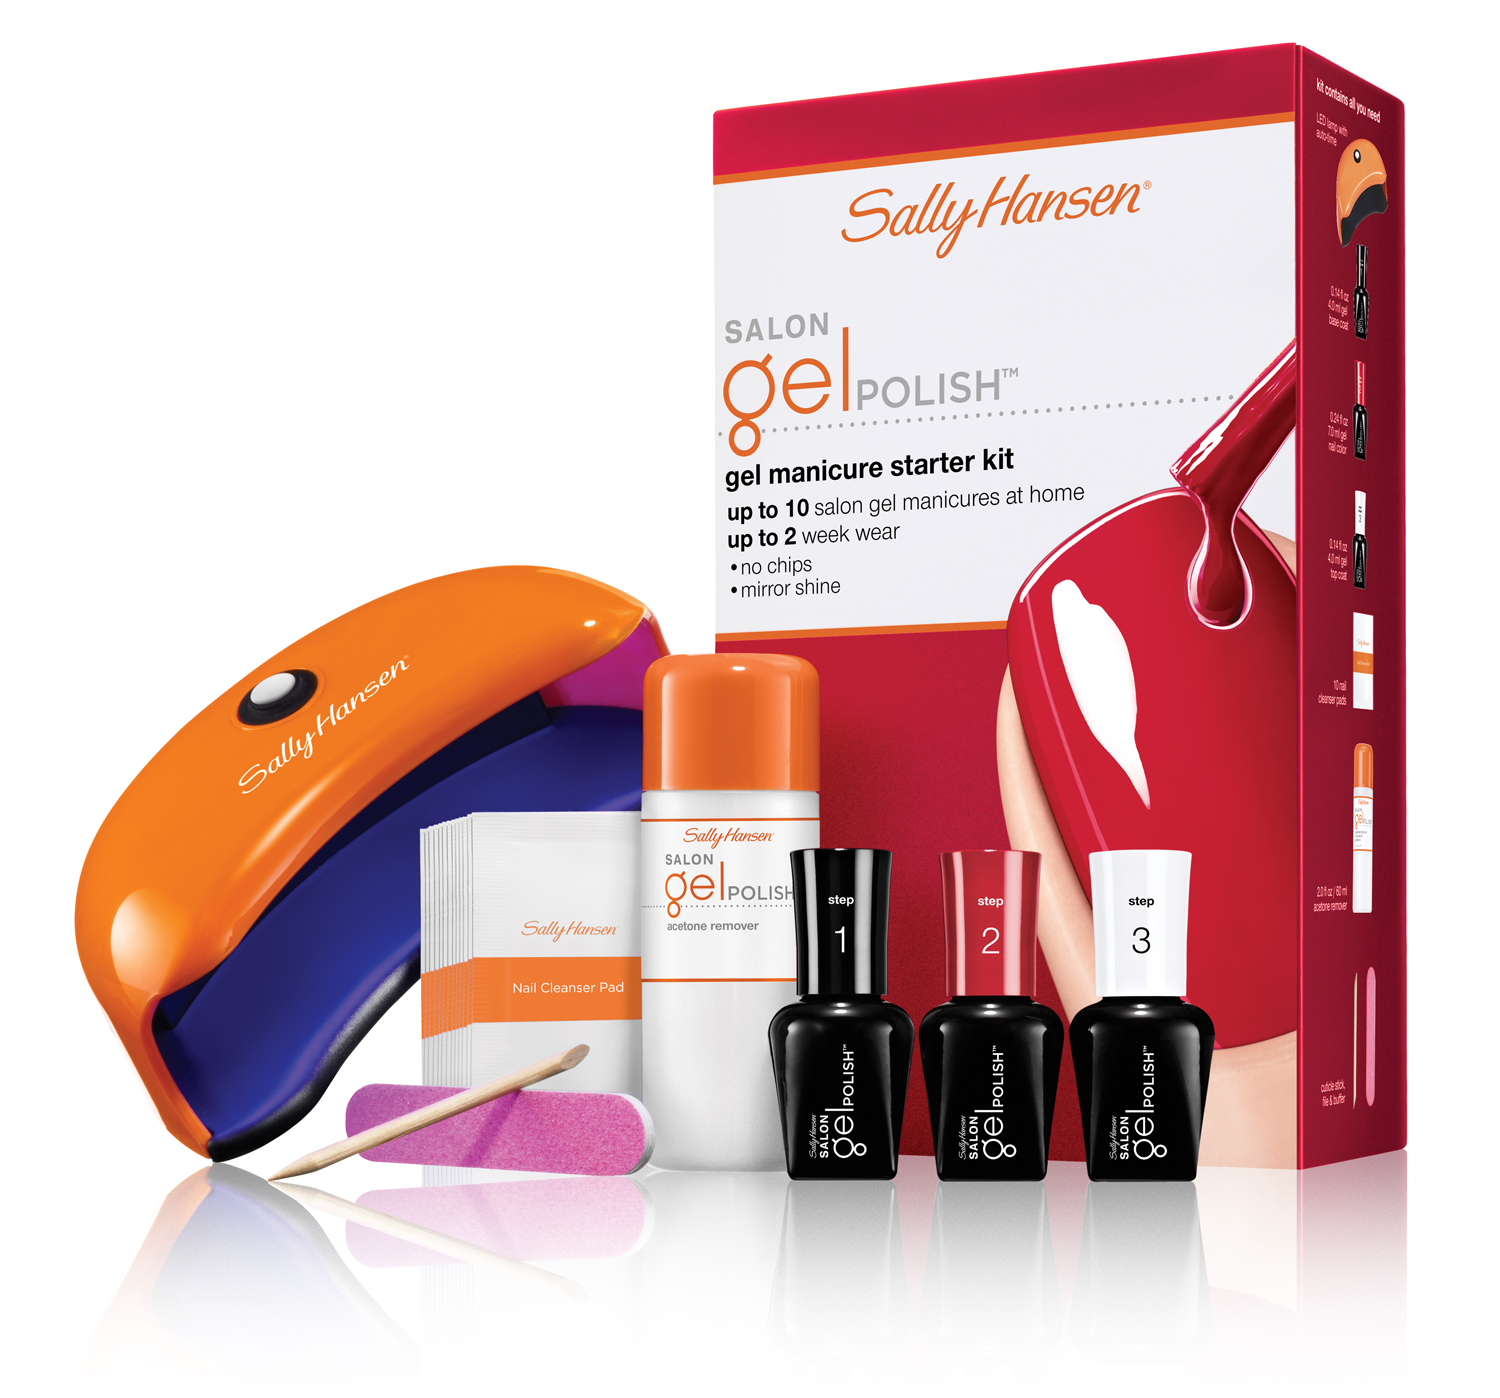 Chalkboard Nails News: Sally Hansen At-Home Gel Manicure Systems